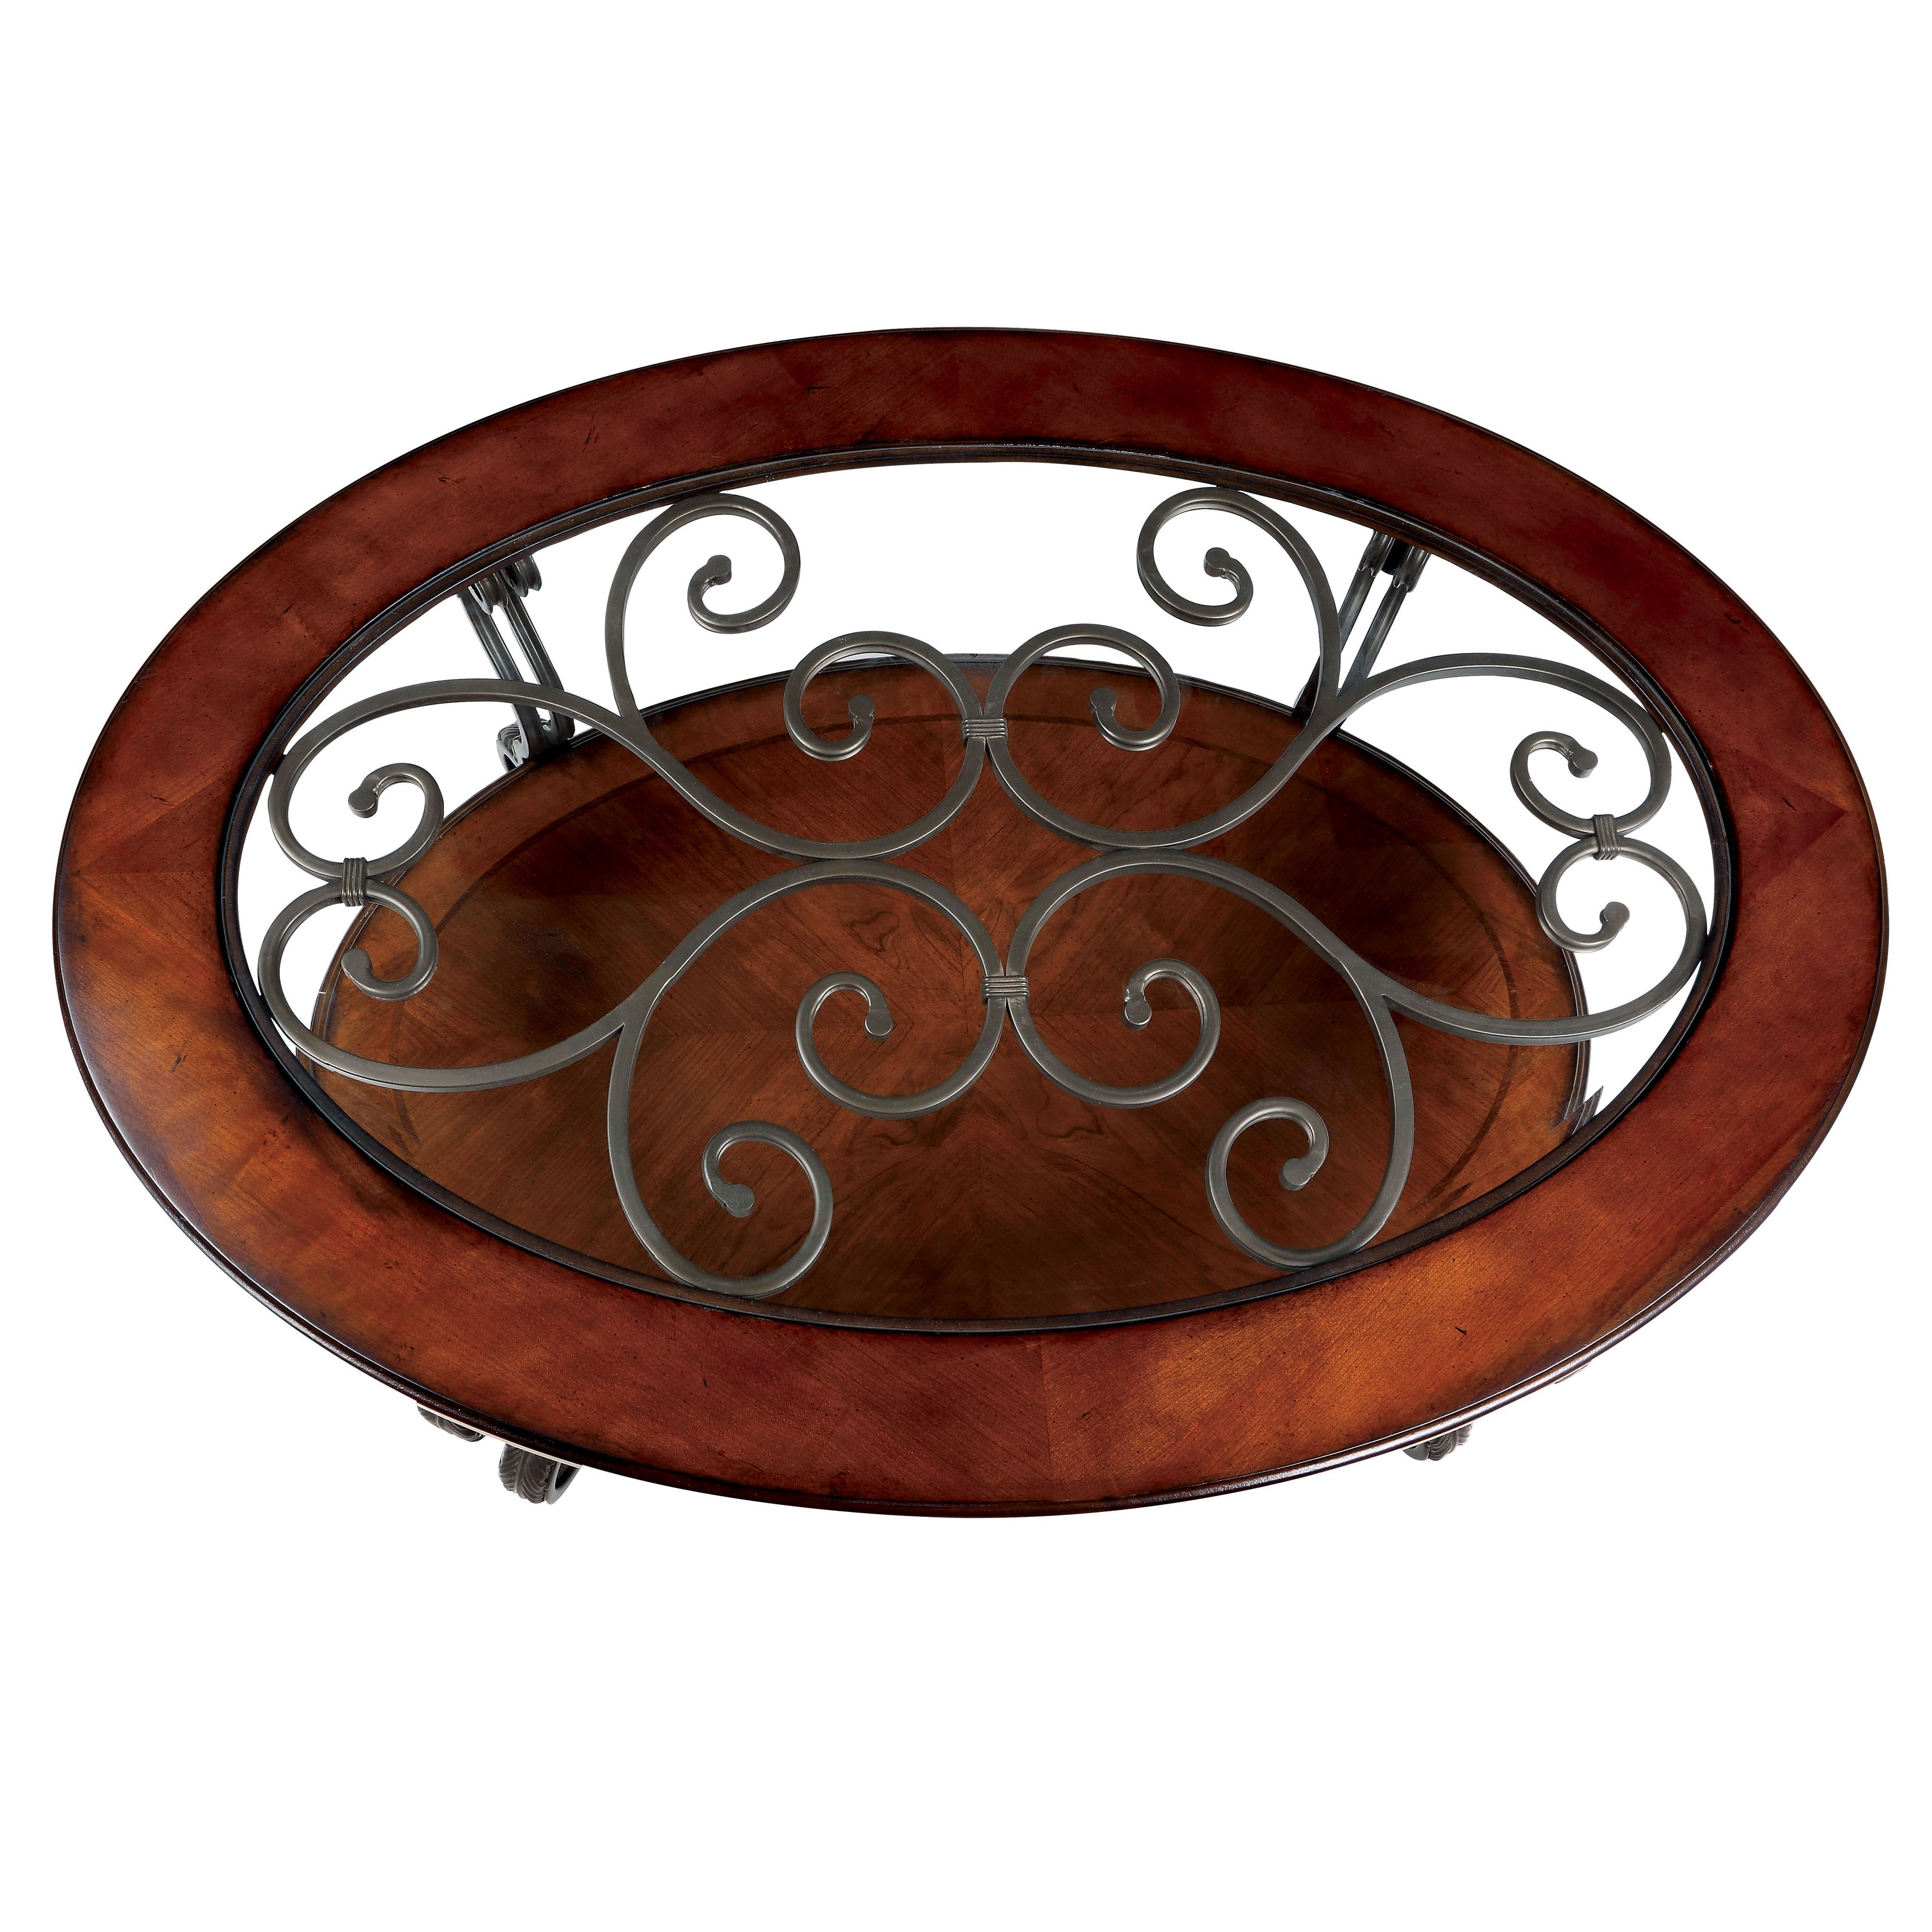 2019 Cohler Traditional Brown Cherry Oval Coffee Tables Inside Furniture Of America Cohler Traditional Brown Cherry Oval Coffee Table Foa (View 5 of 20)